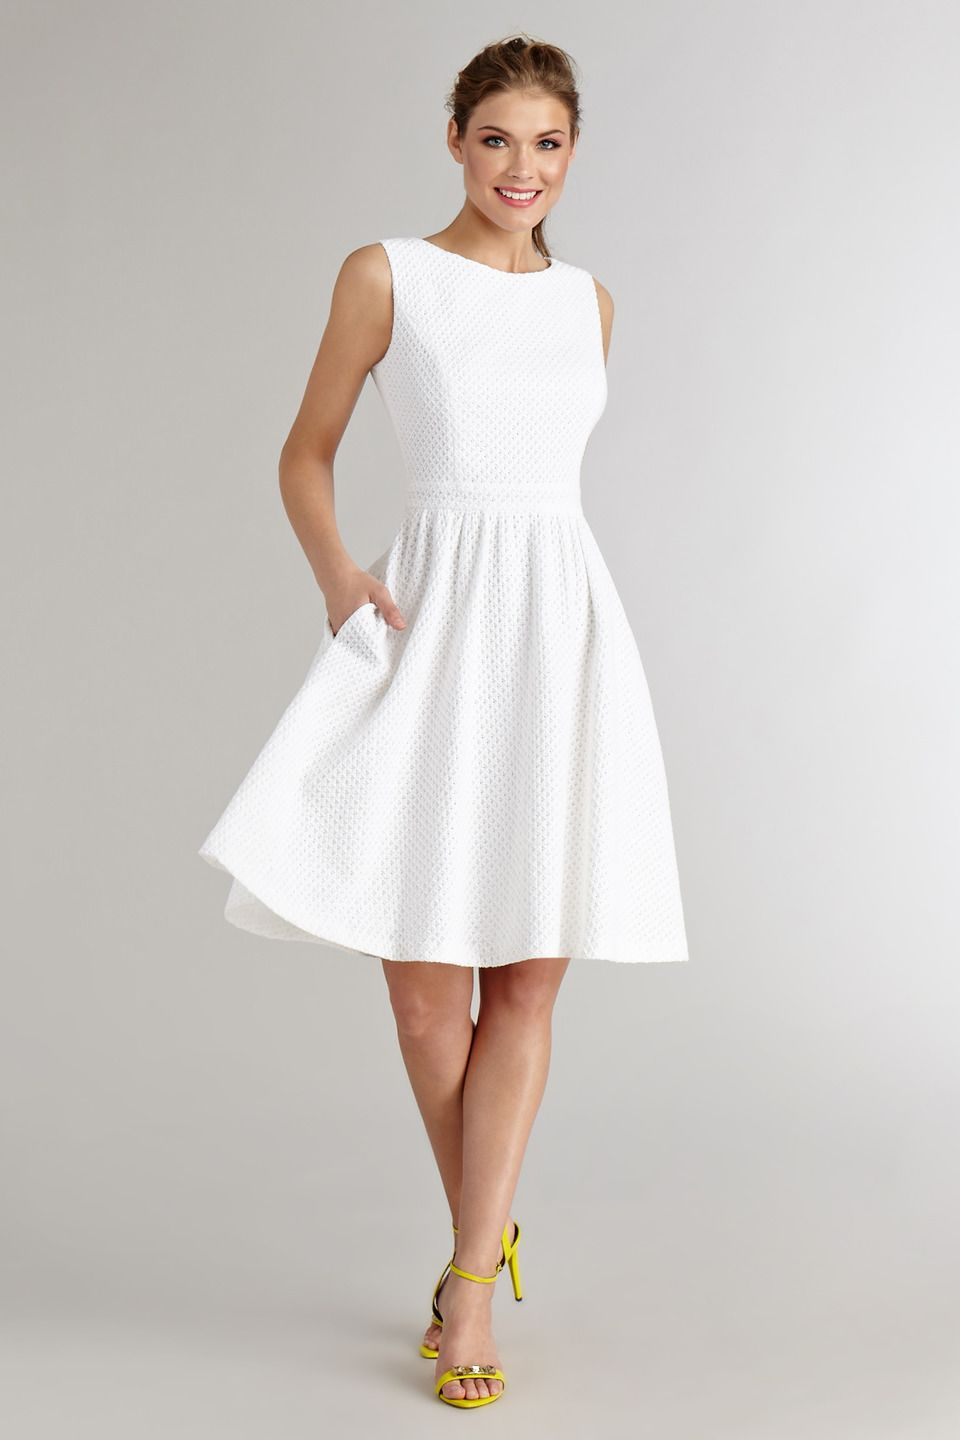 Need A Lwd For Your Bridal Shower Or Rehearsal Dinner Our Collection Of Cute White Dresses Is Off Spring Fashion Dress